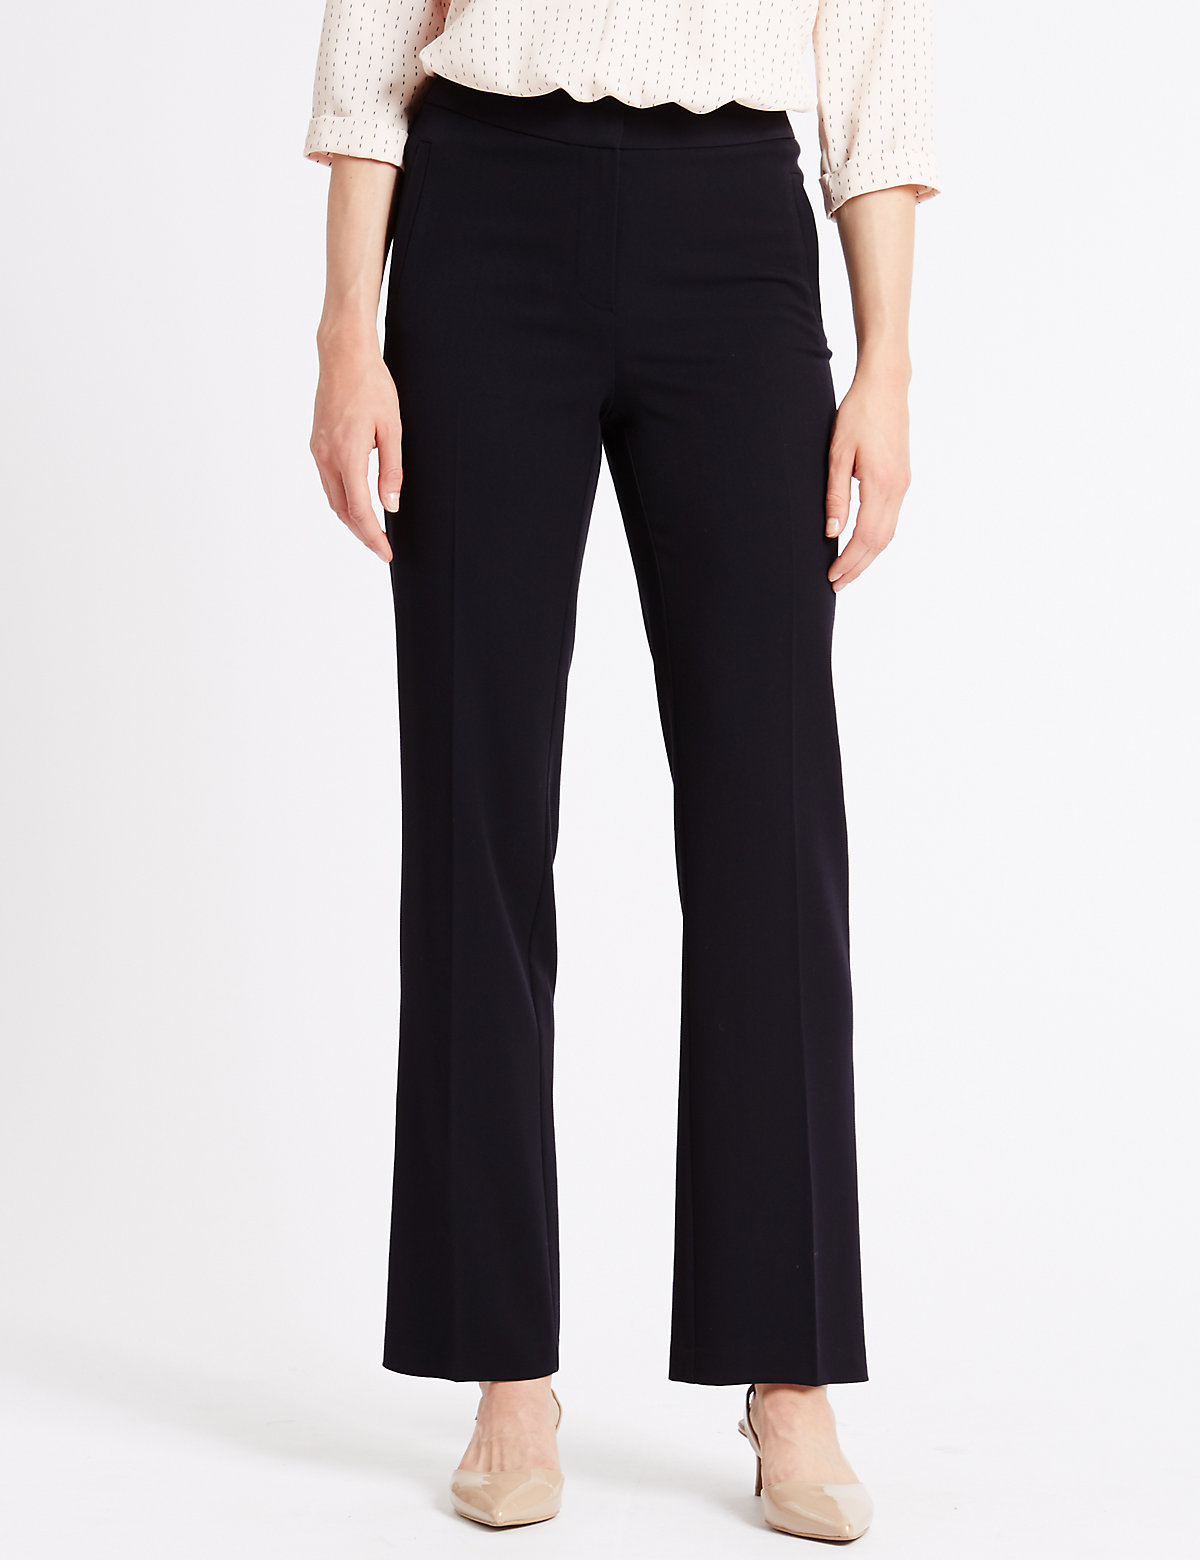 M&S Collection 4-Way Stretch Straight Leg Trousers with Buttonsafe